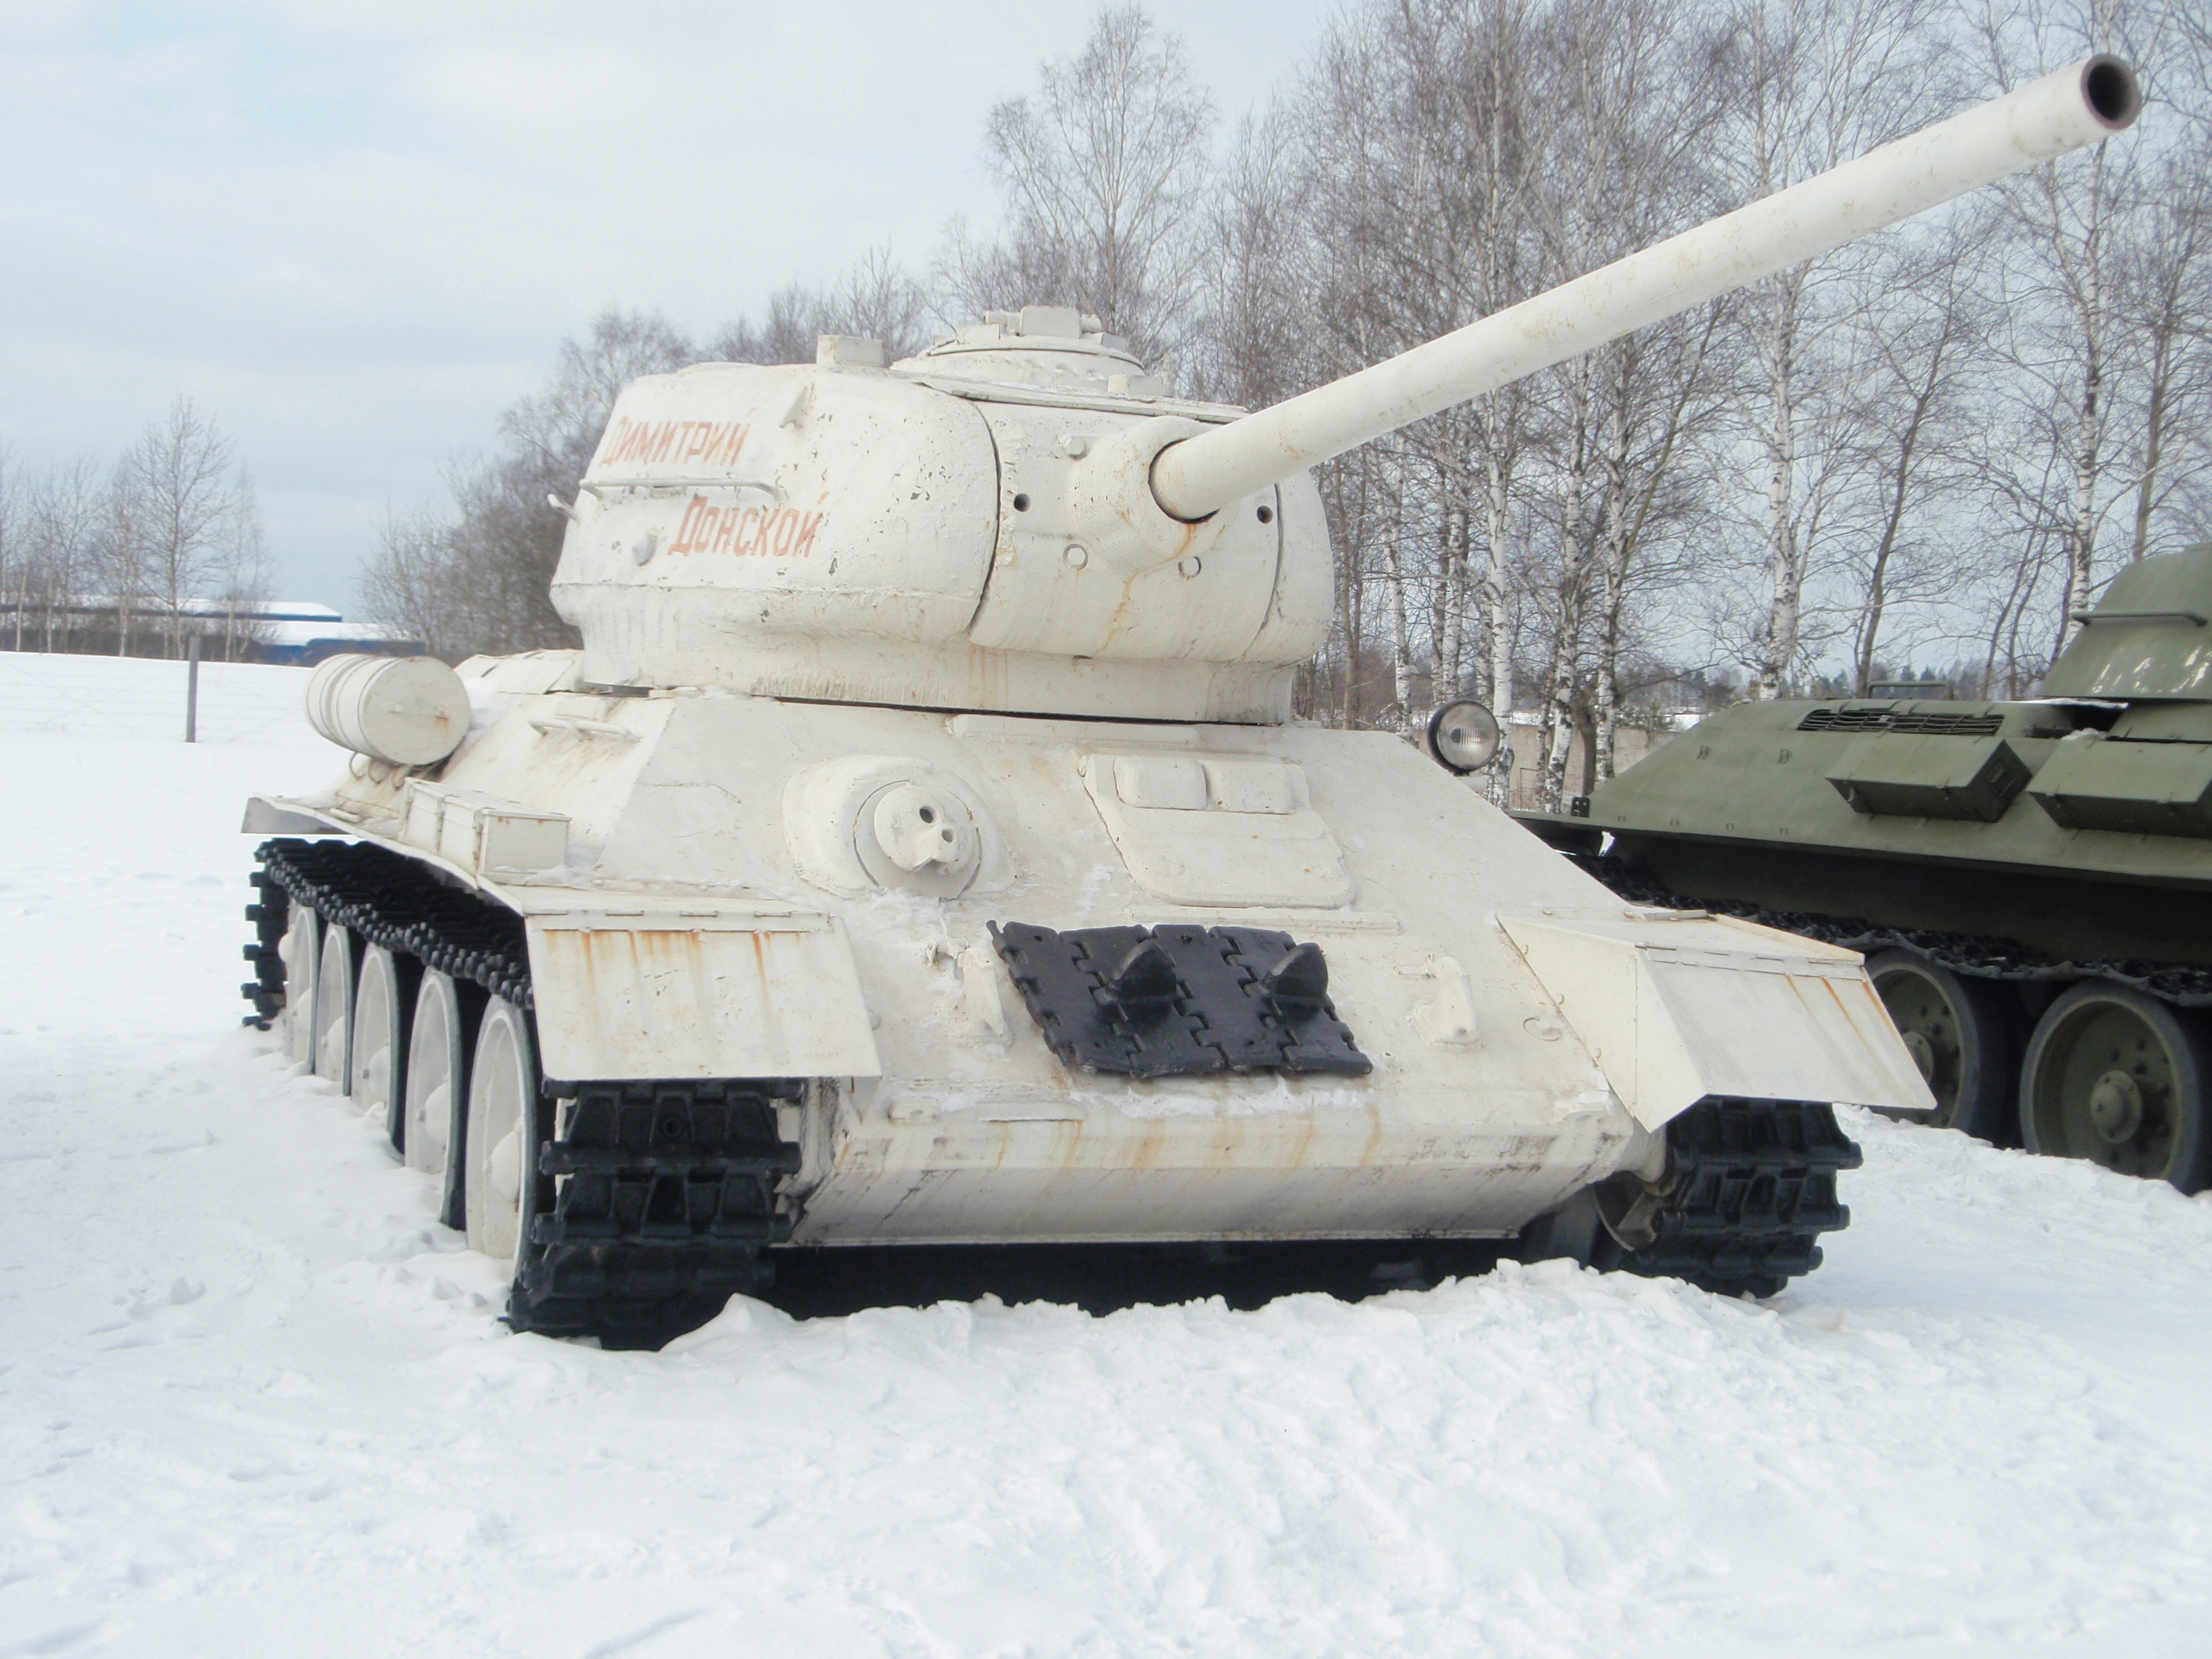 File:Т-34-85 in Kubinka.jpg - Wikimedia Commons